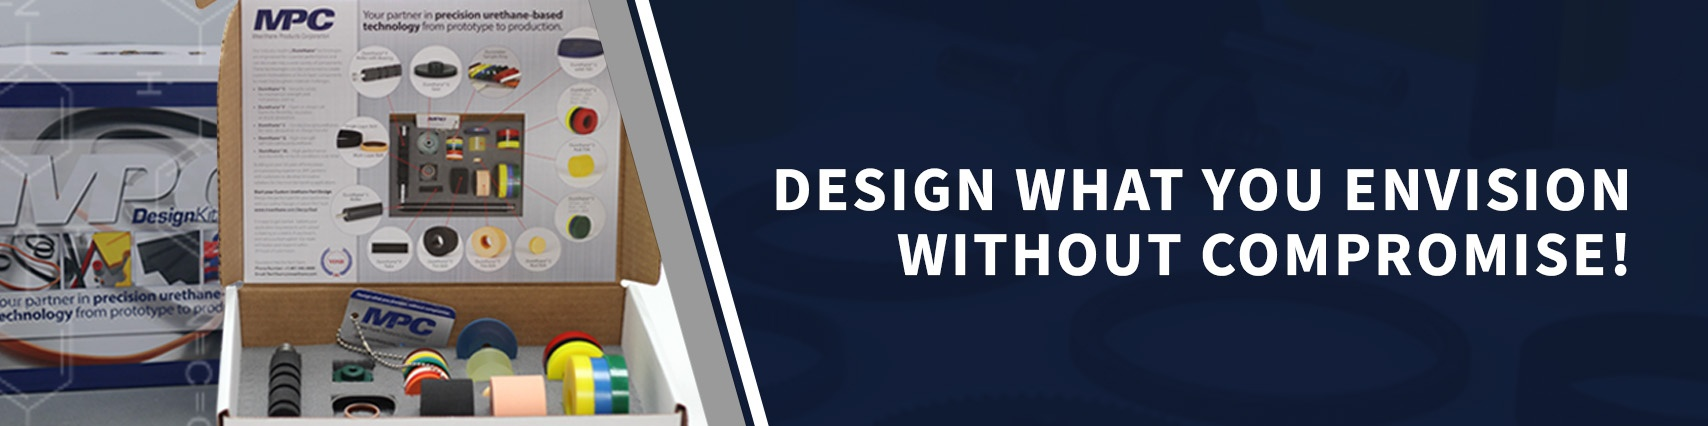 Design what you envision, without compromise!